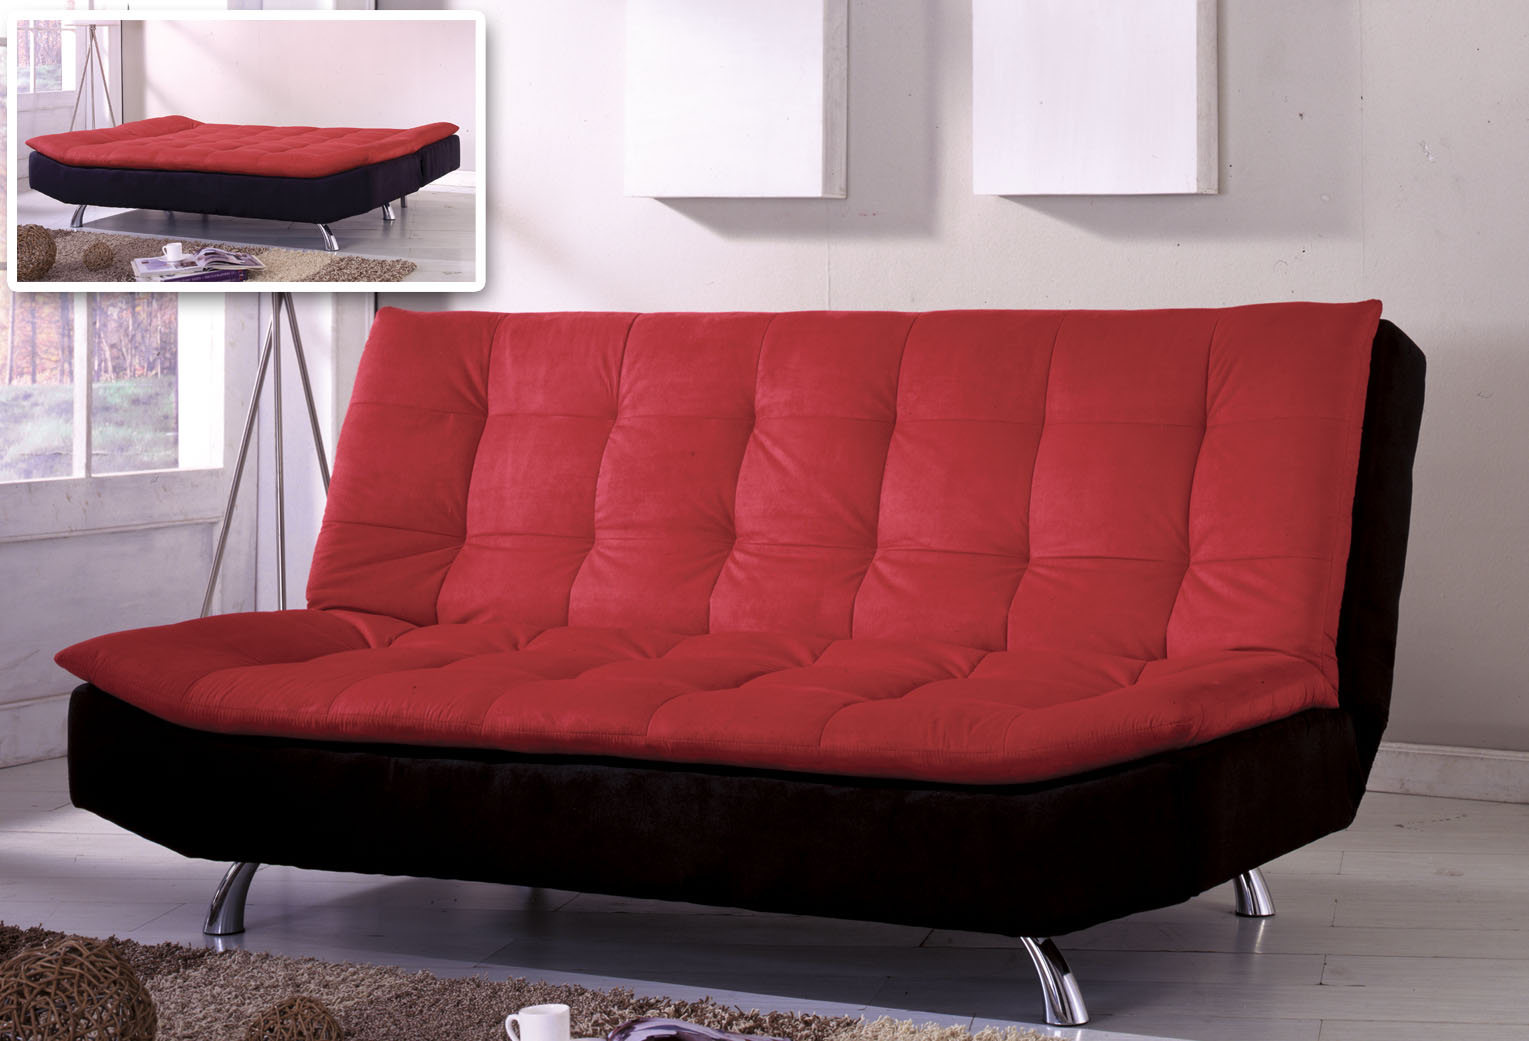 futon beds ikea: frame and bed cover designs | homesfeed